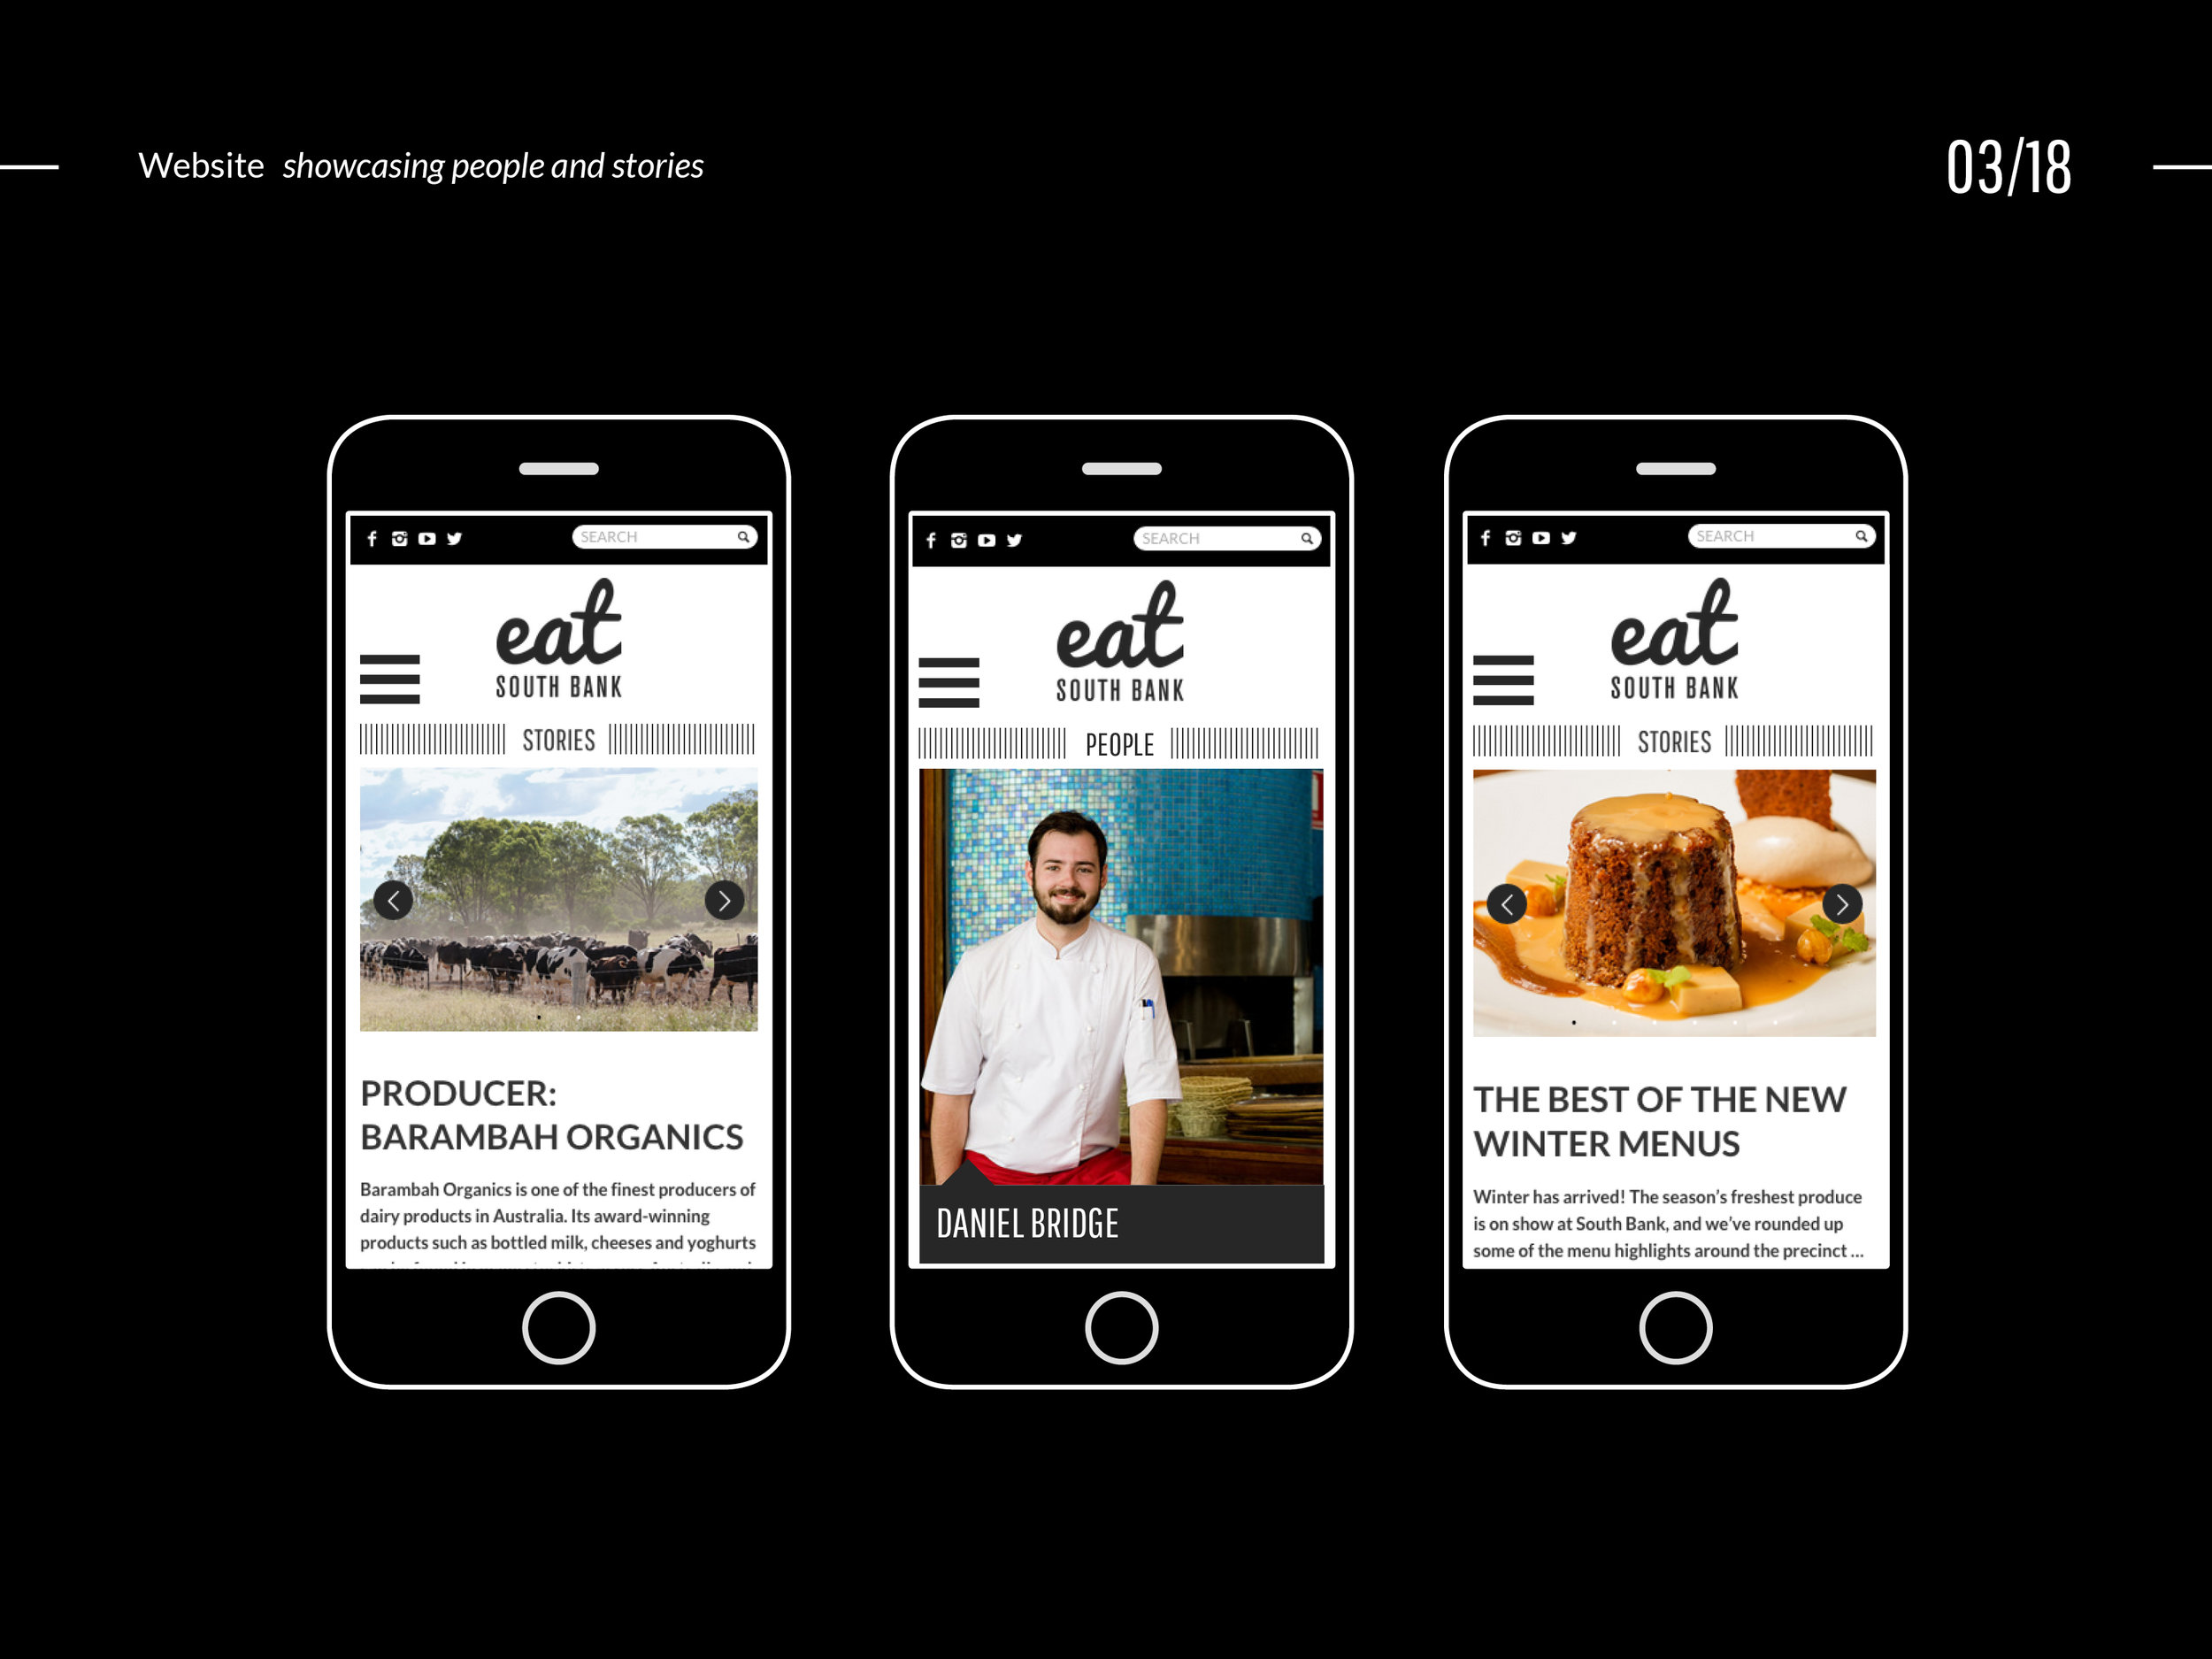 map-creative-eat-south-bank-launch-project-rollout-3.jpg